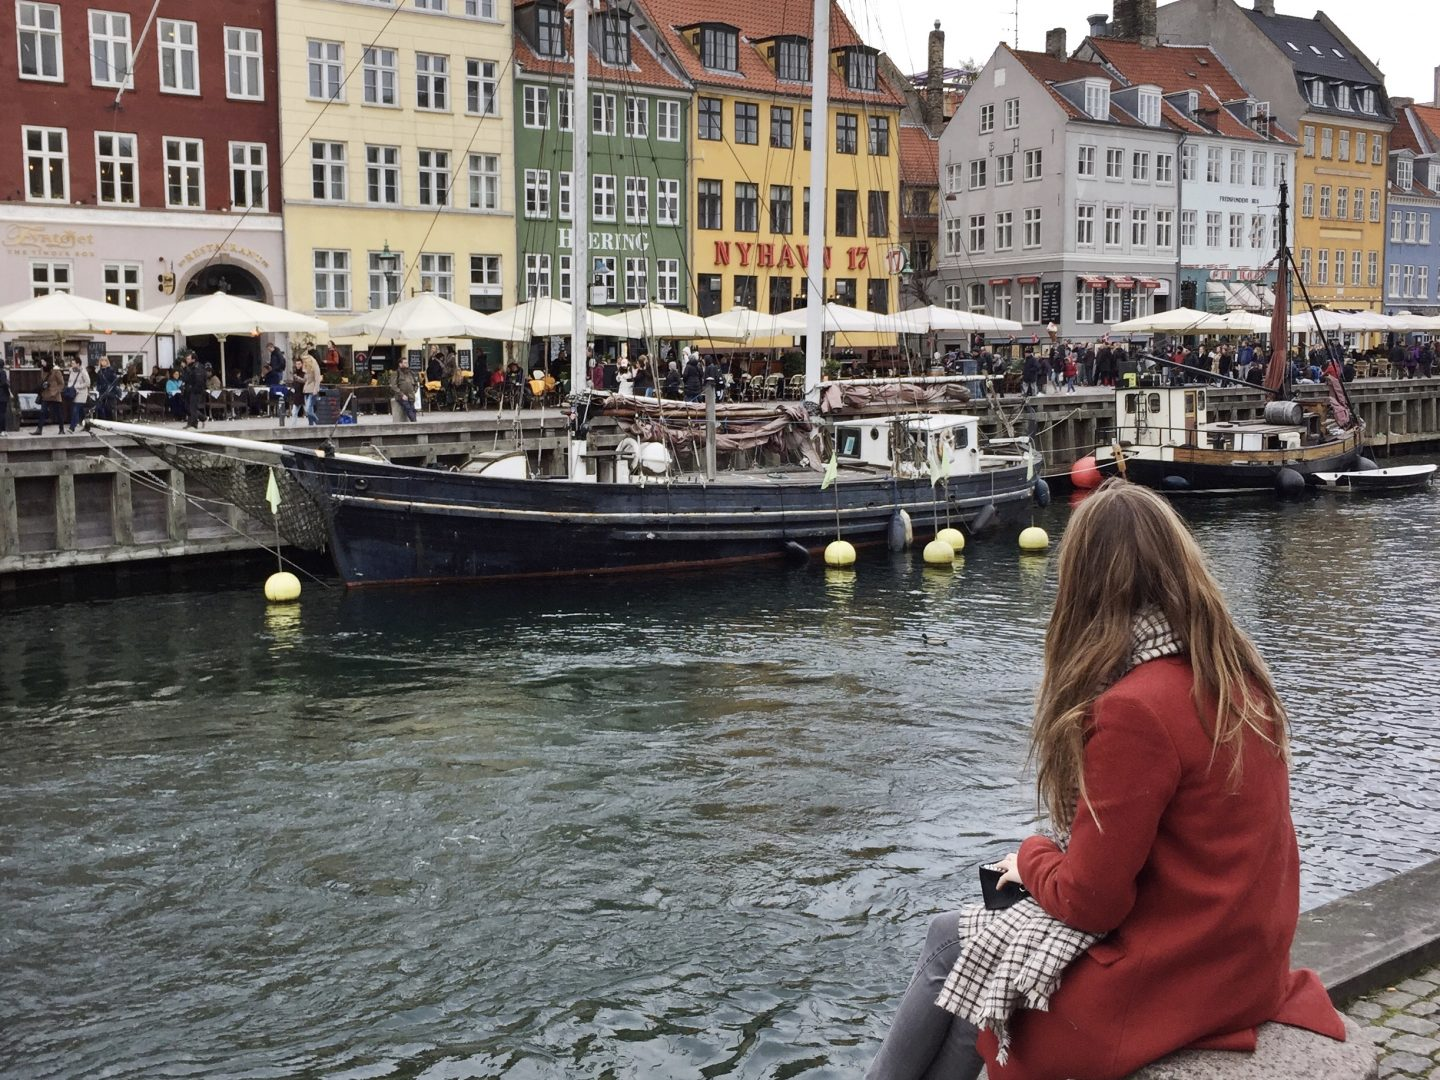 72 hours in Copenhagen (the Copenhagen guide)